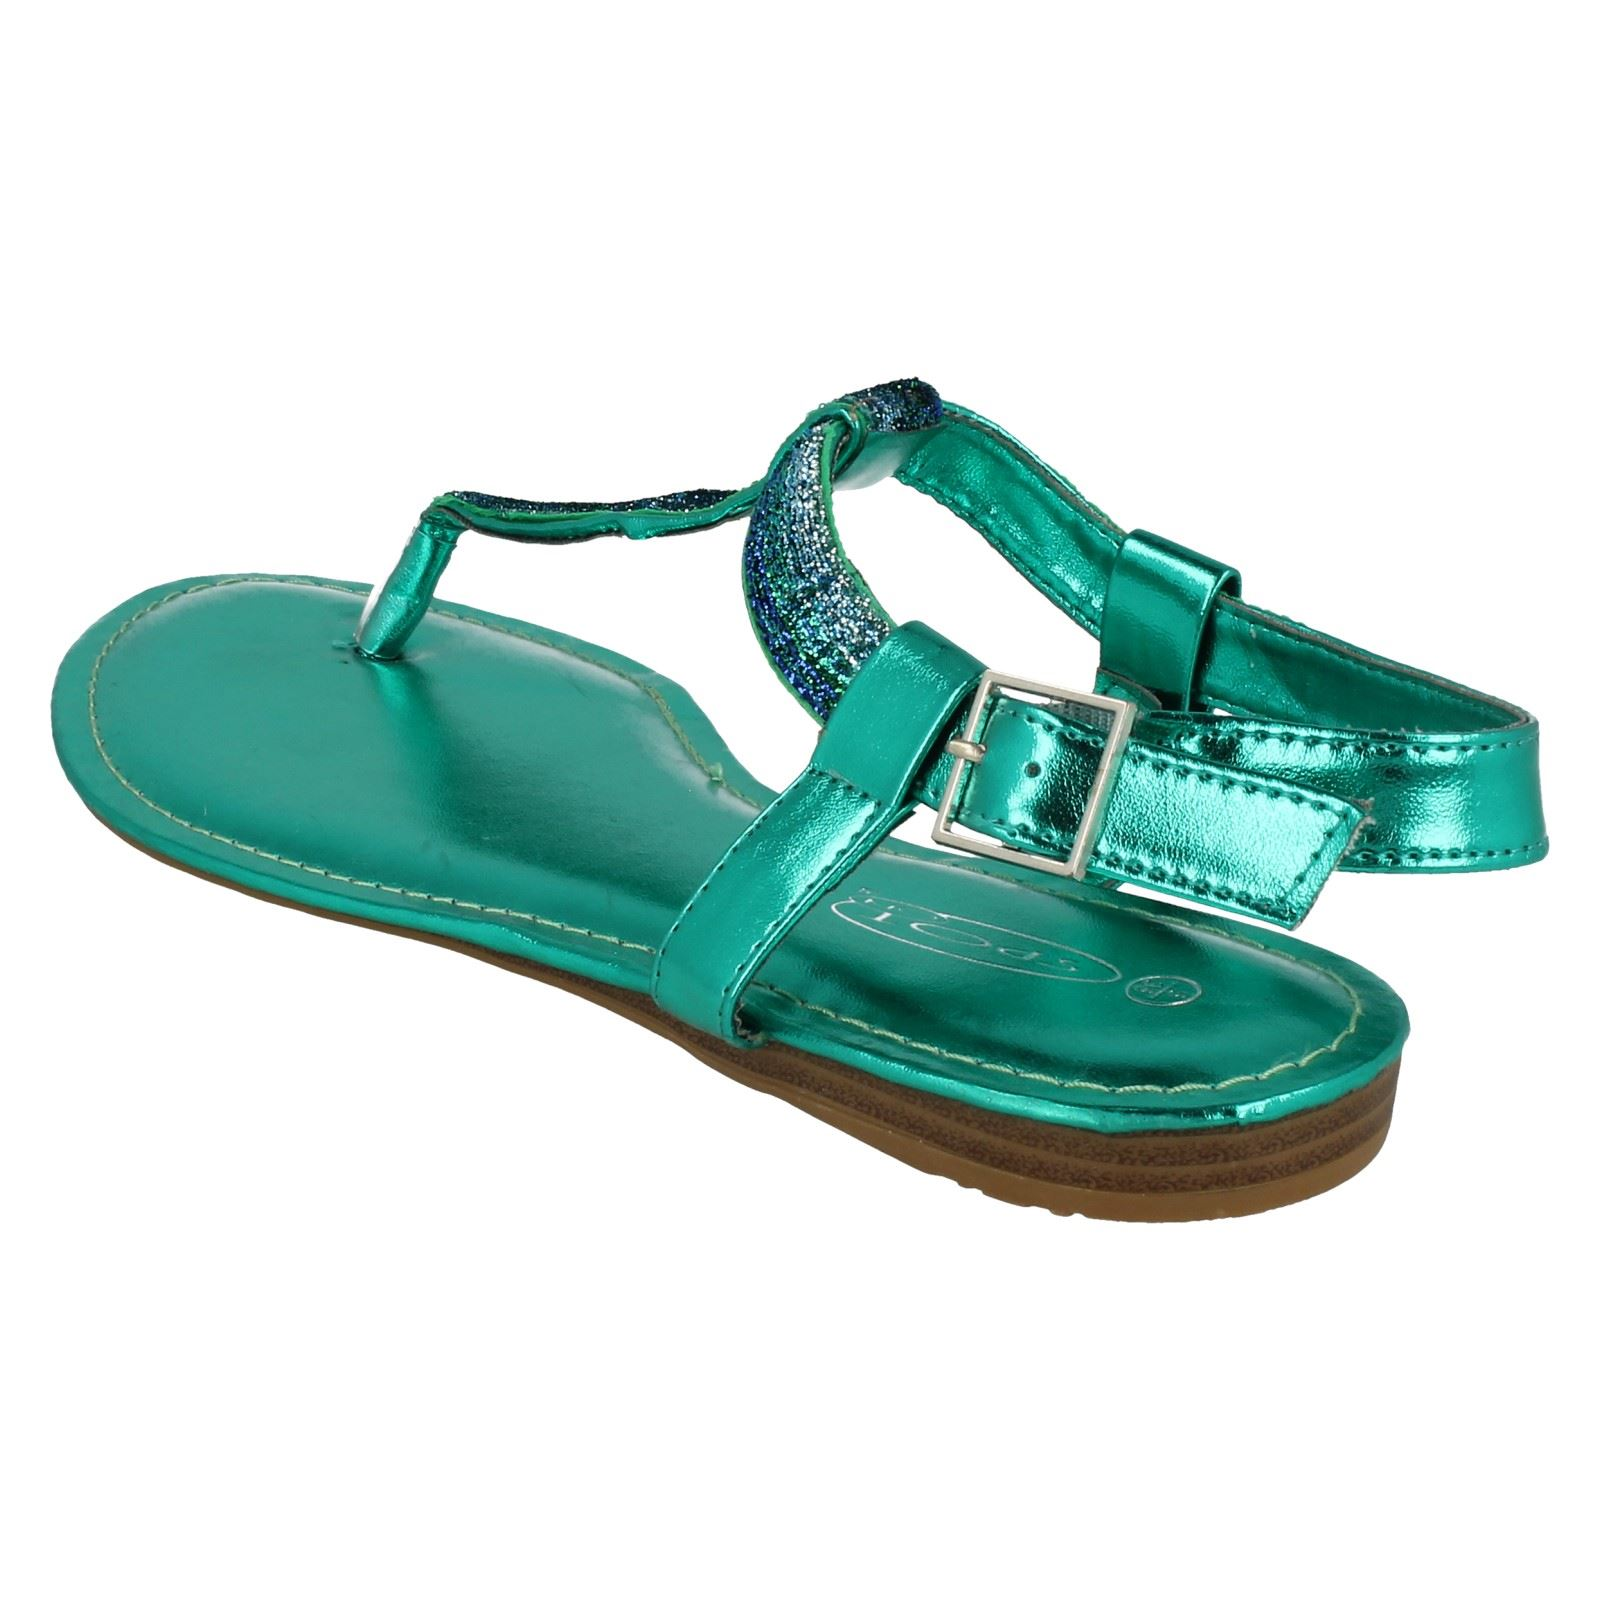 Damas Spot On Casual Flip Flop metálicos brillantes